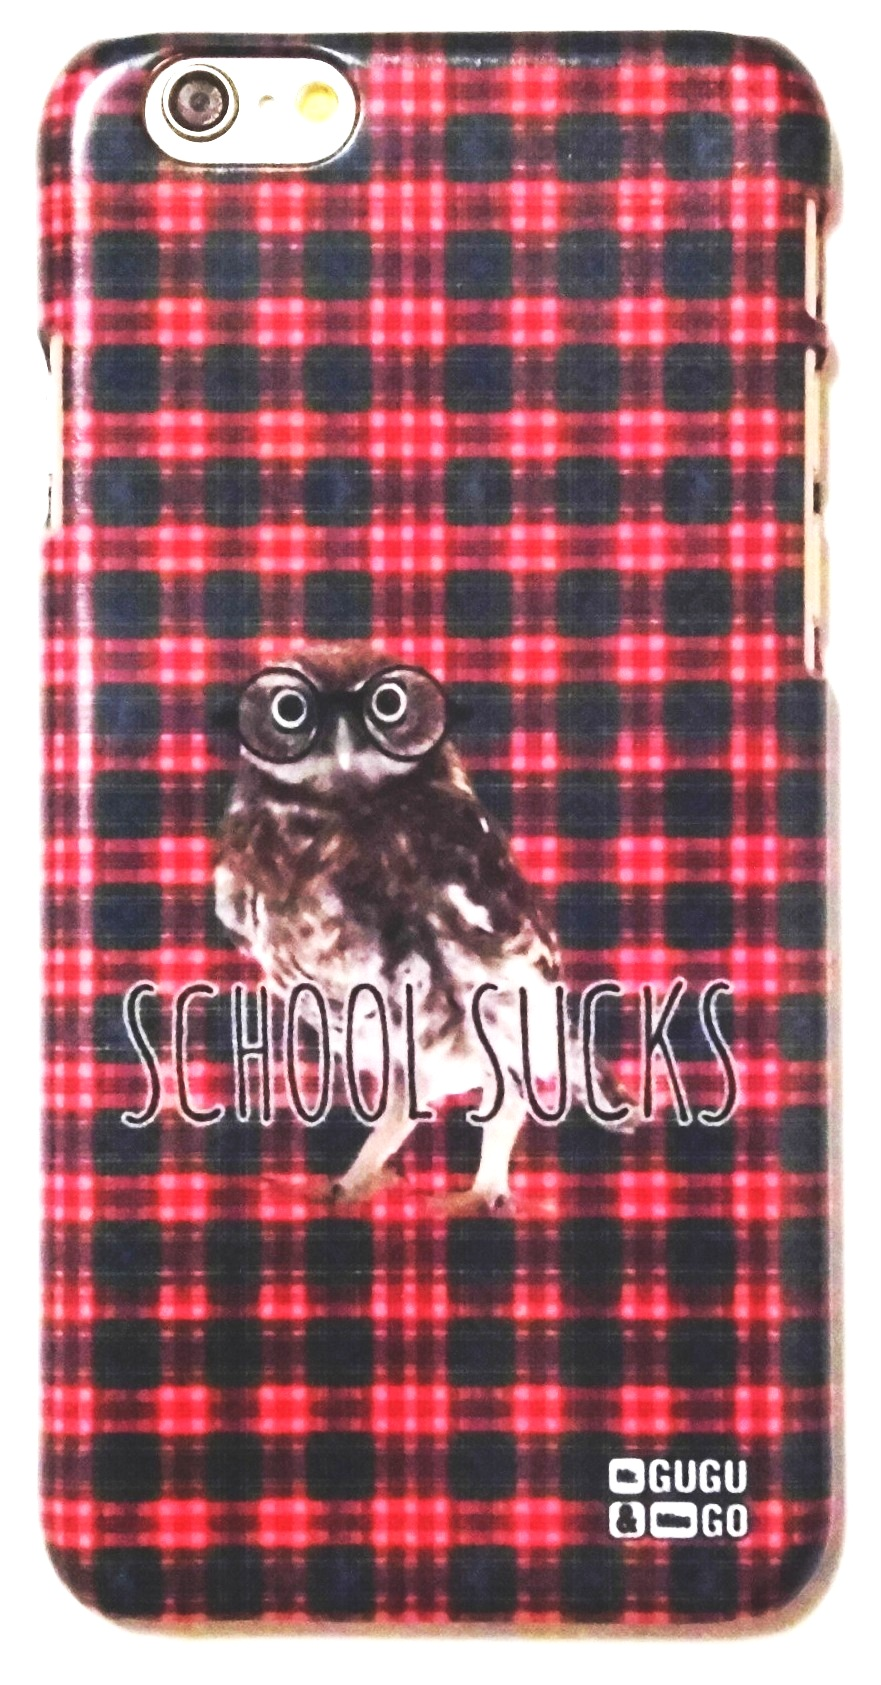 School Sucks phone case iphone 6 (2)